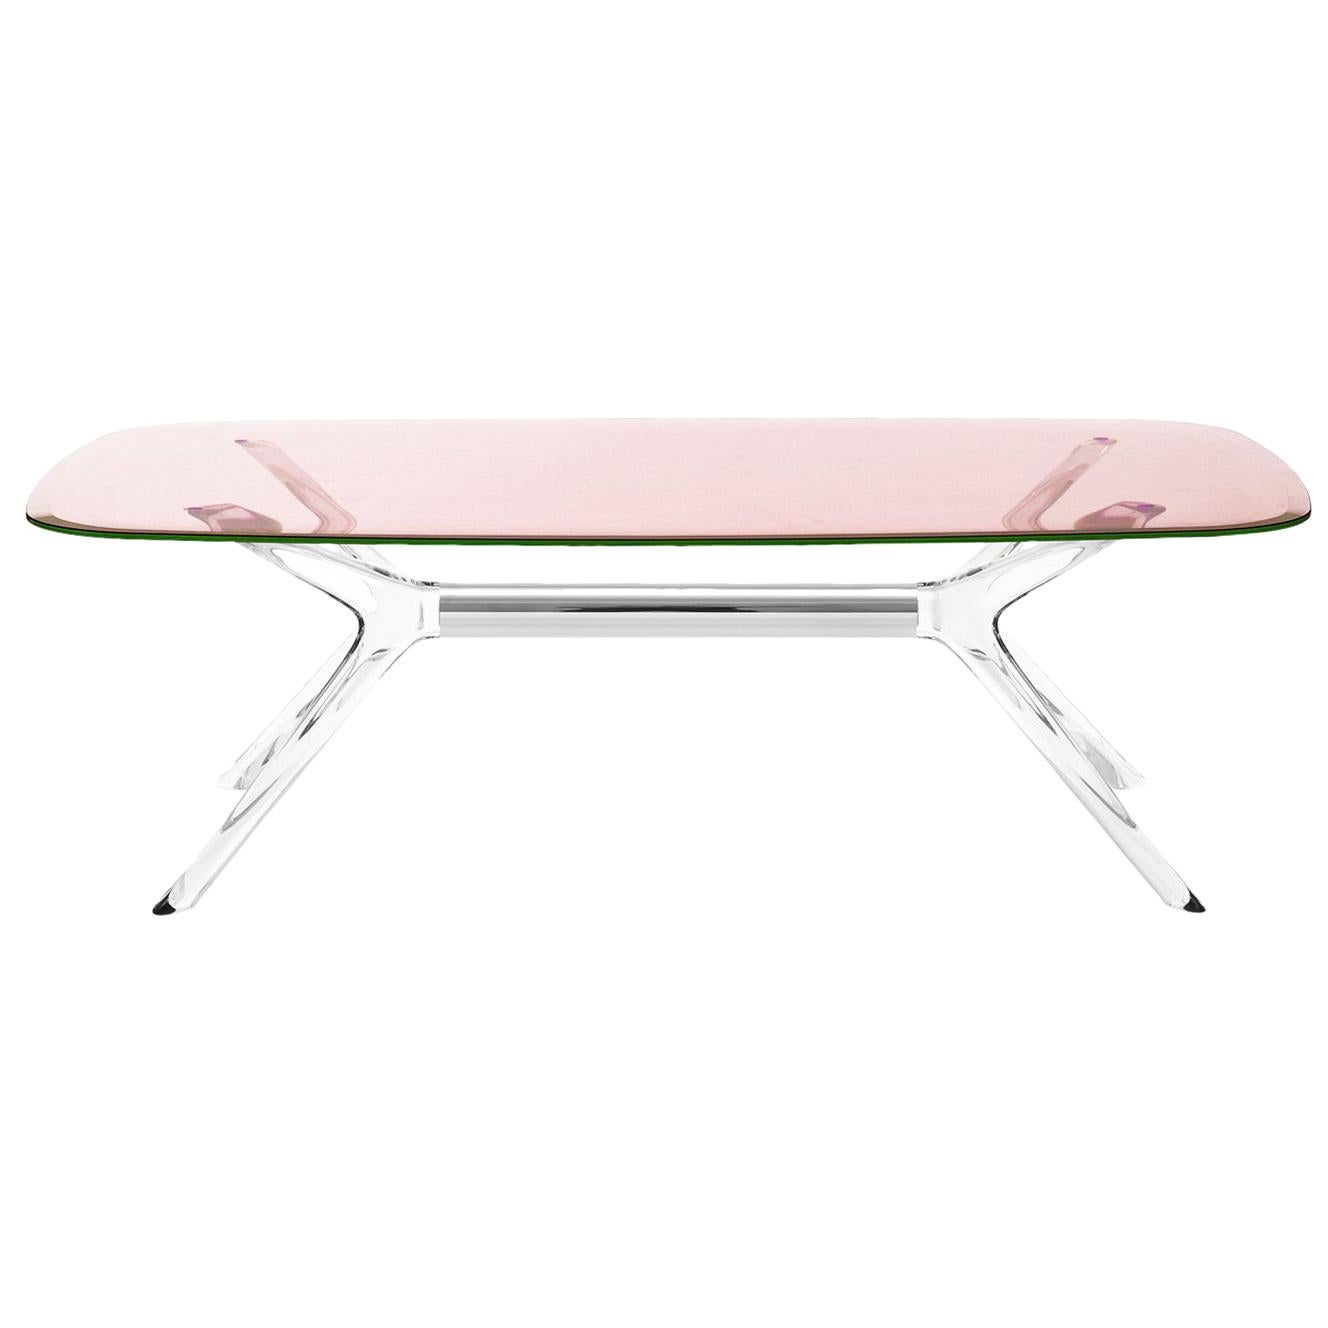 Kartell Blast Rectangle Table in Chrome with Pink Top by Philippe Starck